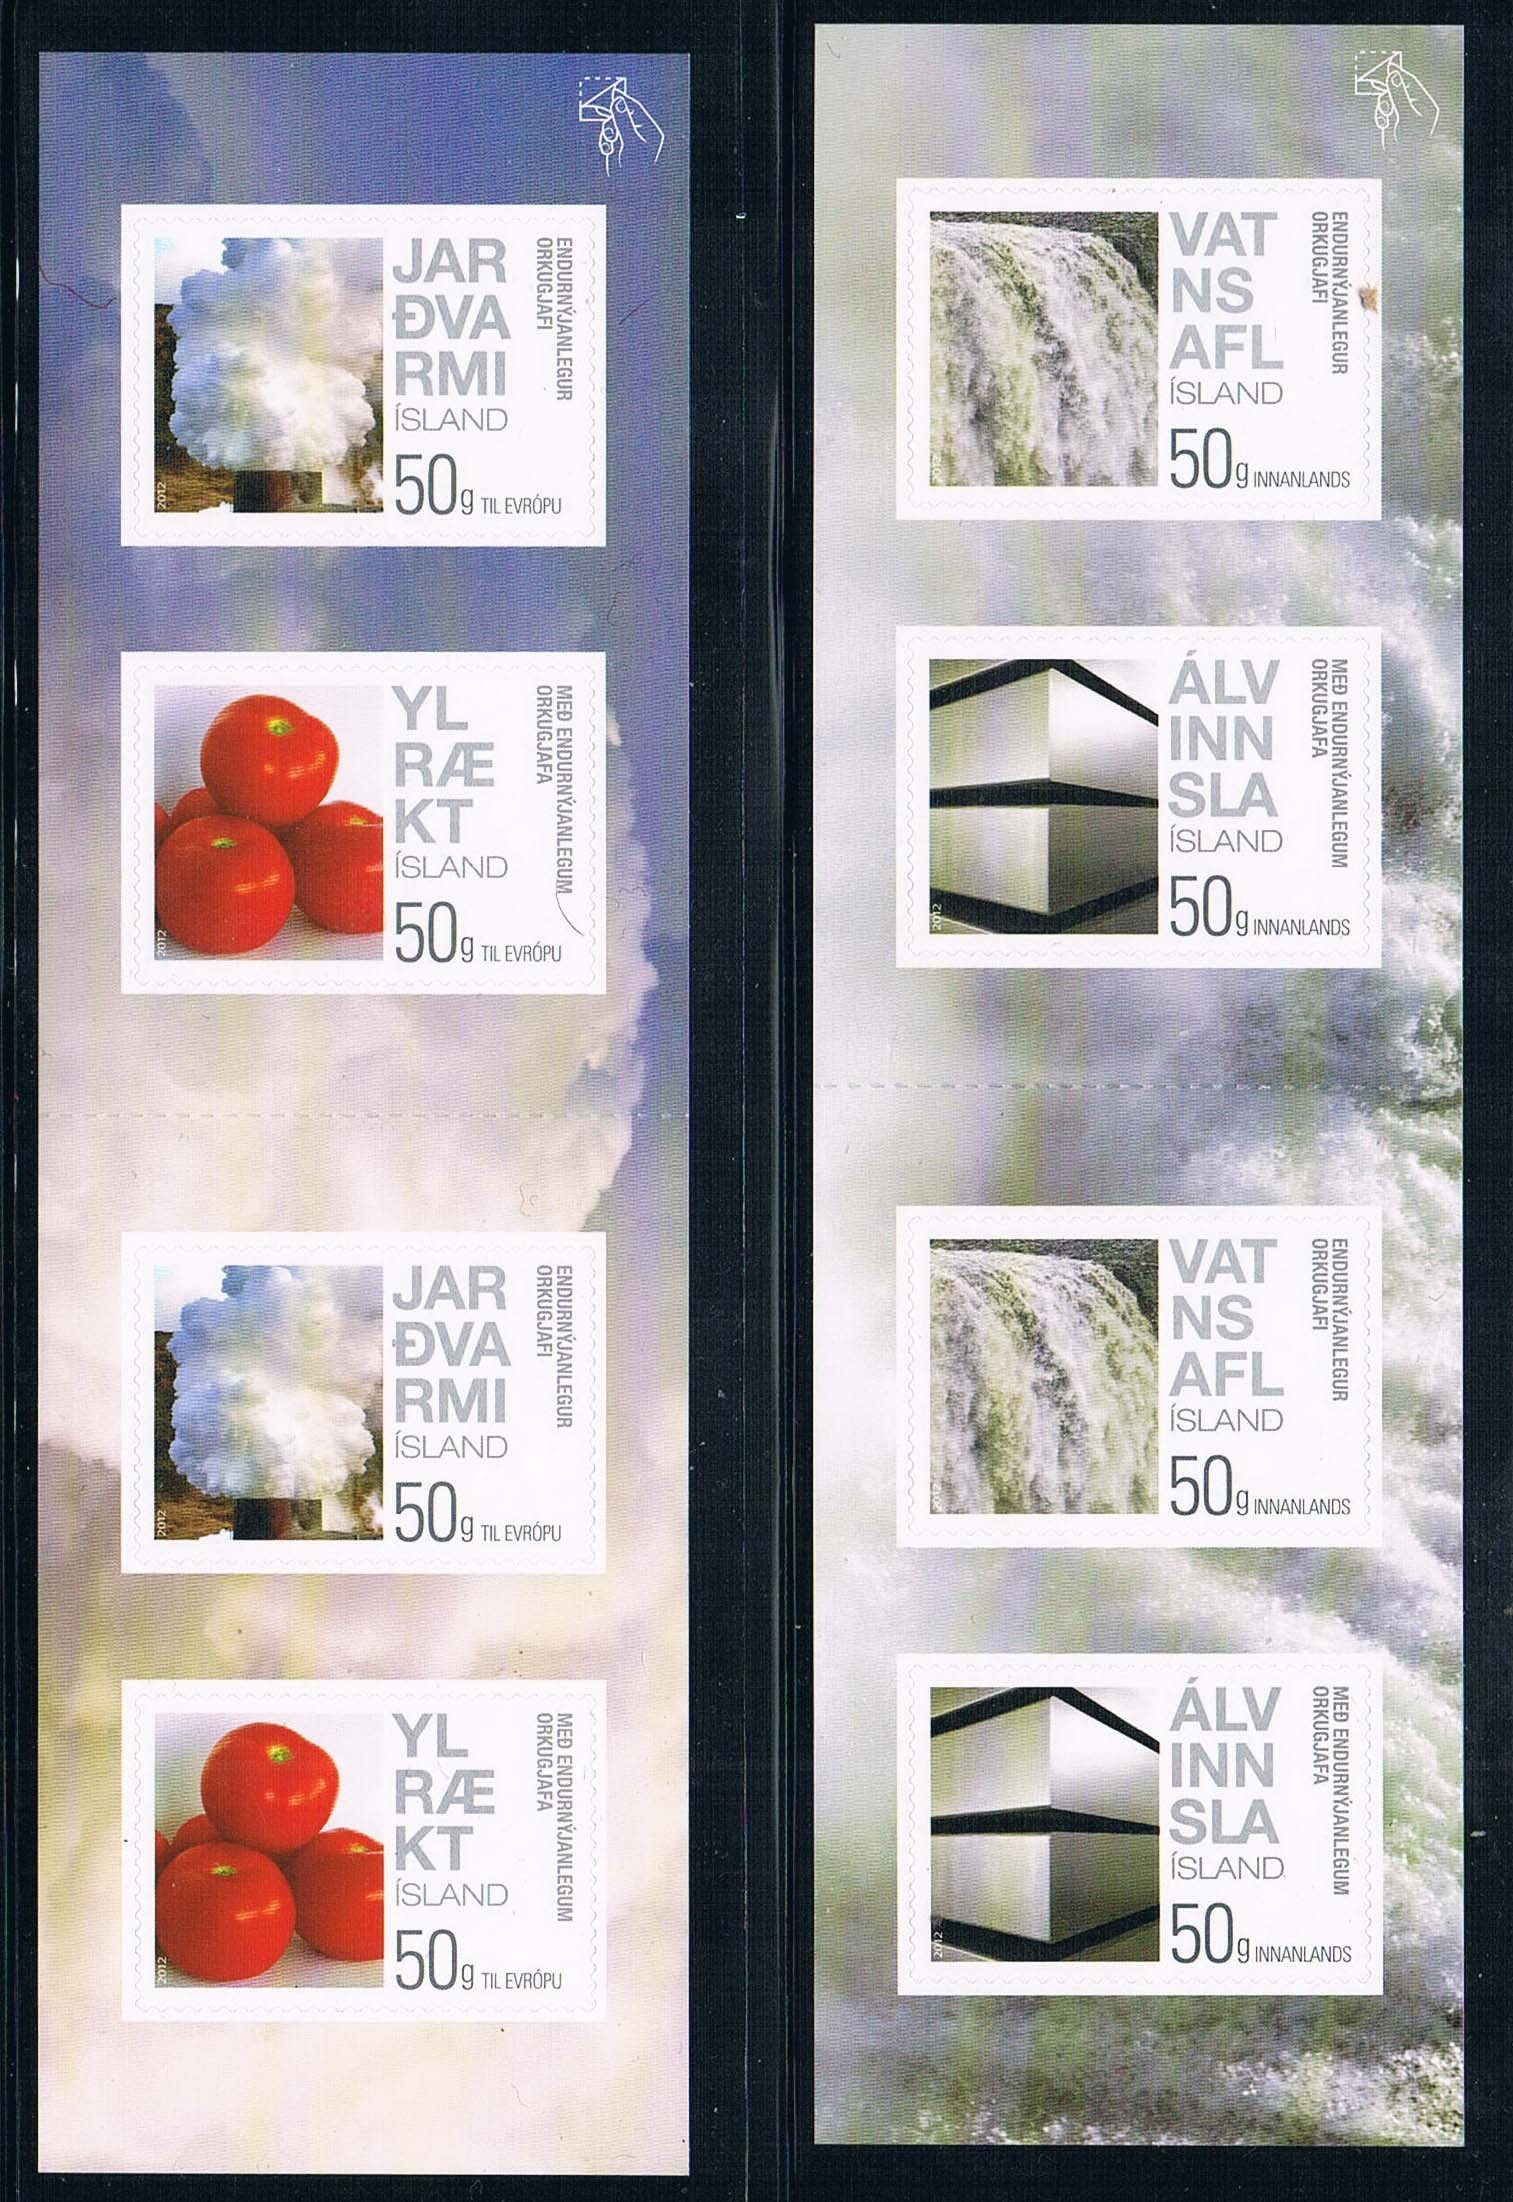 SW0133 Iceland 2012 clean energy geothermal waterfall booklet stamps 2 new 0508 from 2012 ea1420 1ms new 0626 coastal bird stamps